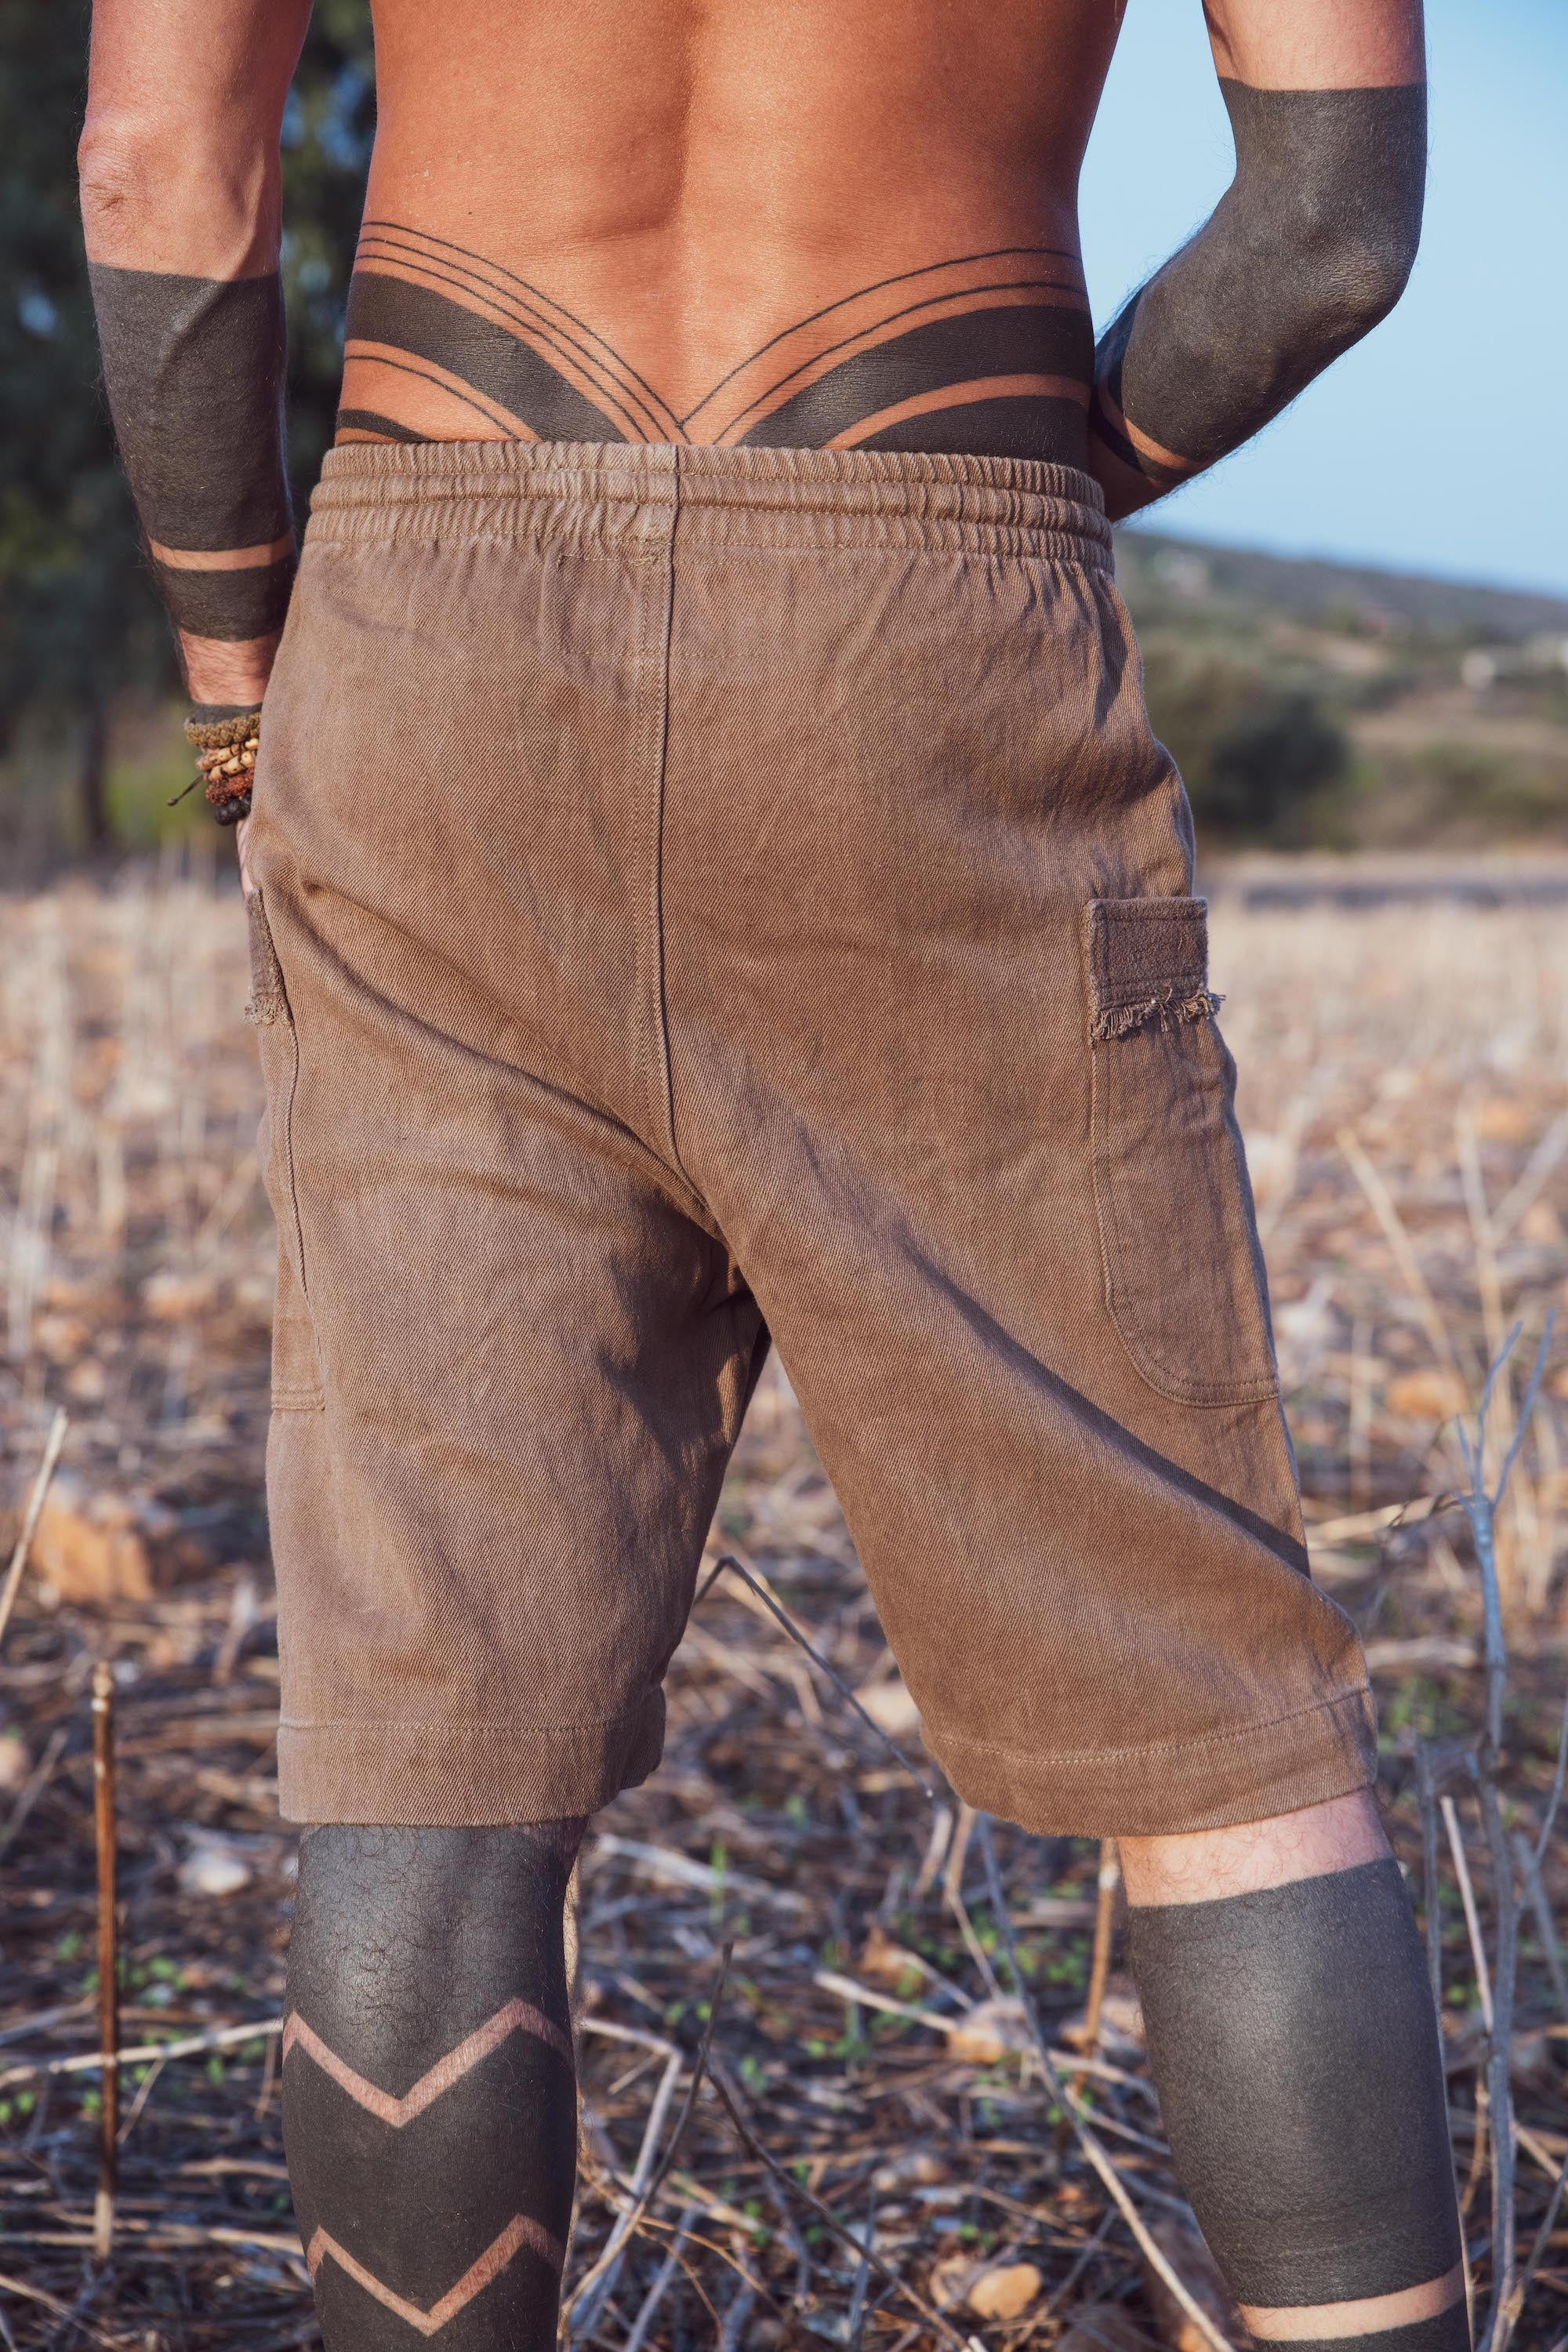 Walnut Bark Herbal Dye Short Hemp Short Pants • Natural Dye • Hemp Cotton Pants